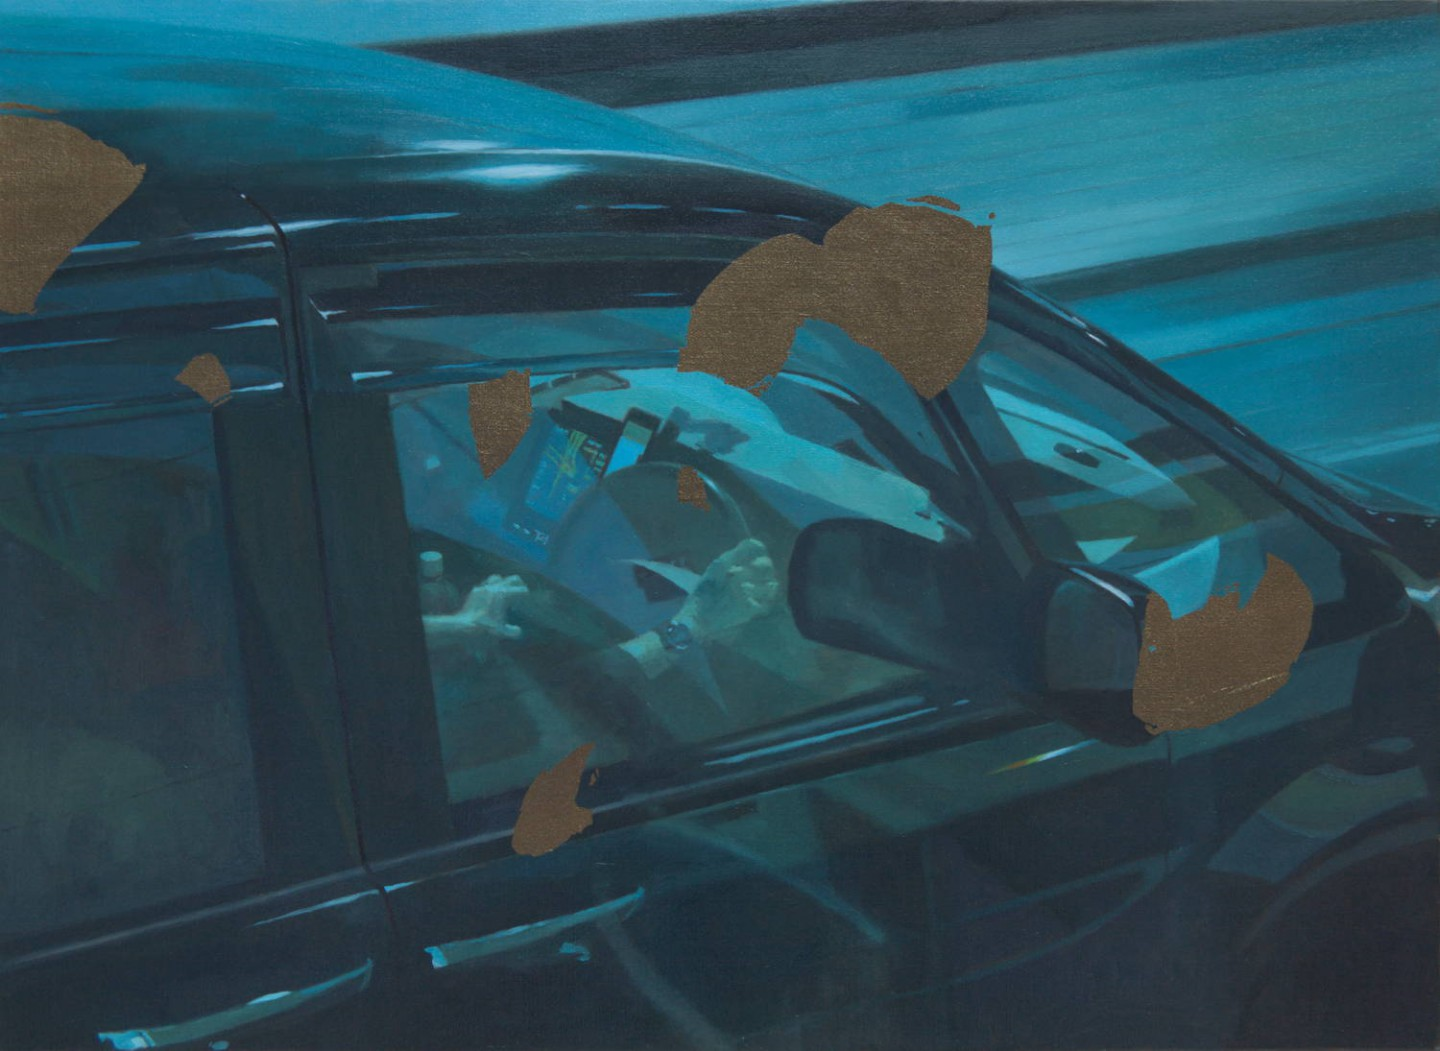 ナイトクルージング-Night cruising(haneda)/530×727mm/Oil on canvas/2019